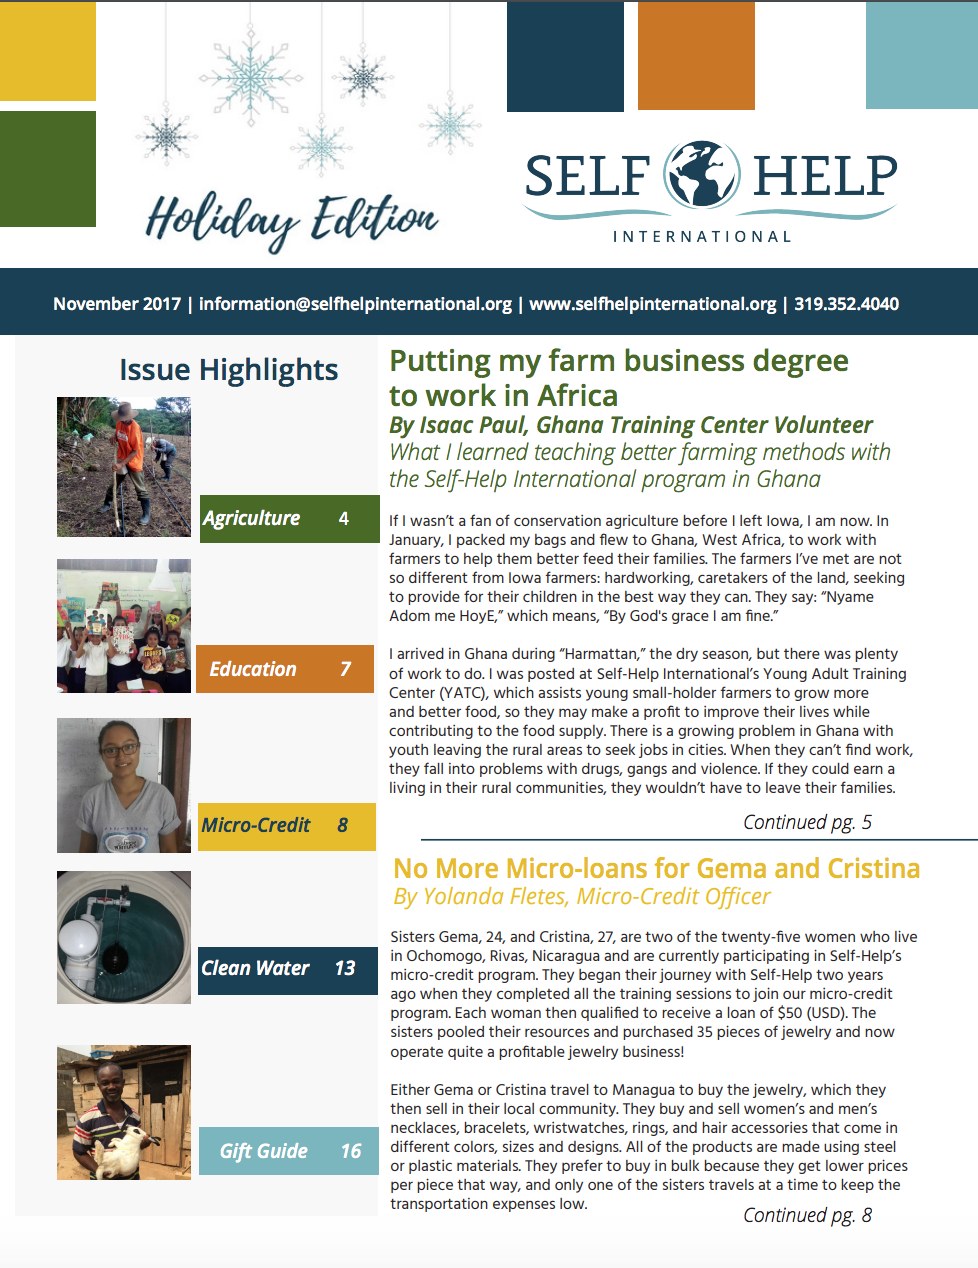 2017 Fall Newsletter: Holiday Edition